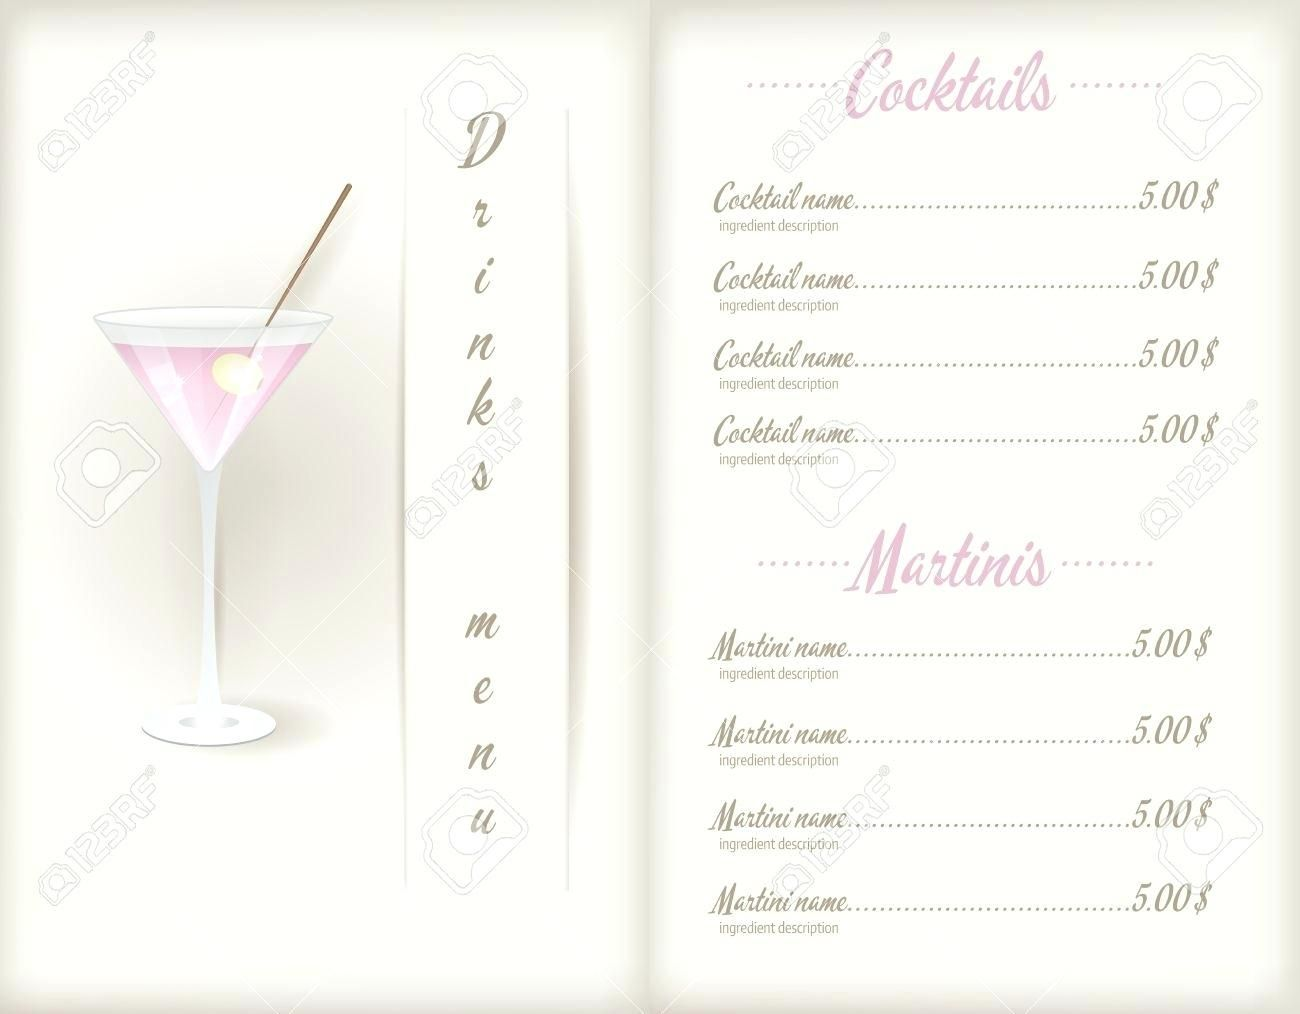 Drink Menu Template Wepage.co in Cocktail Menu Template